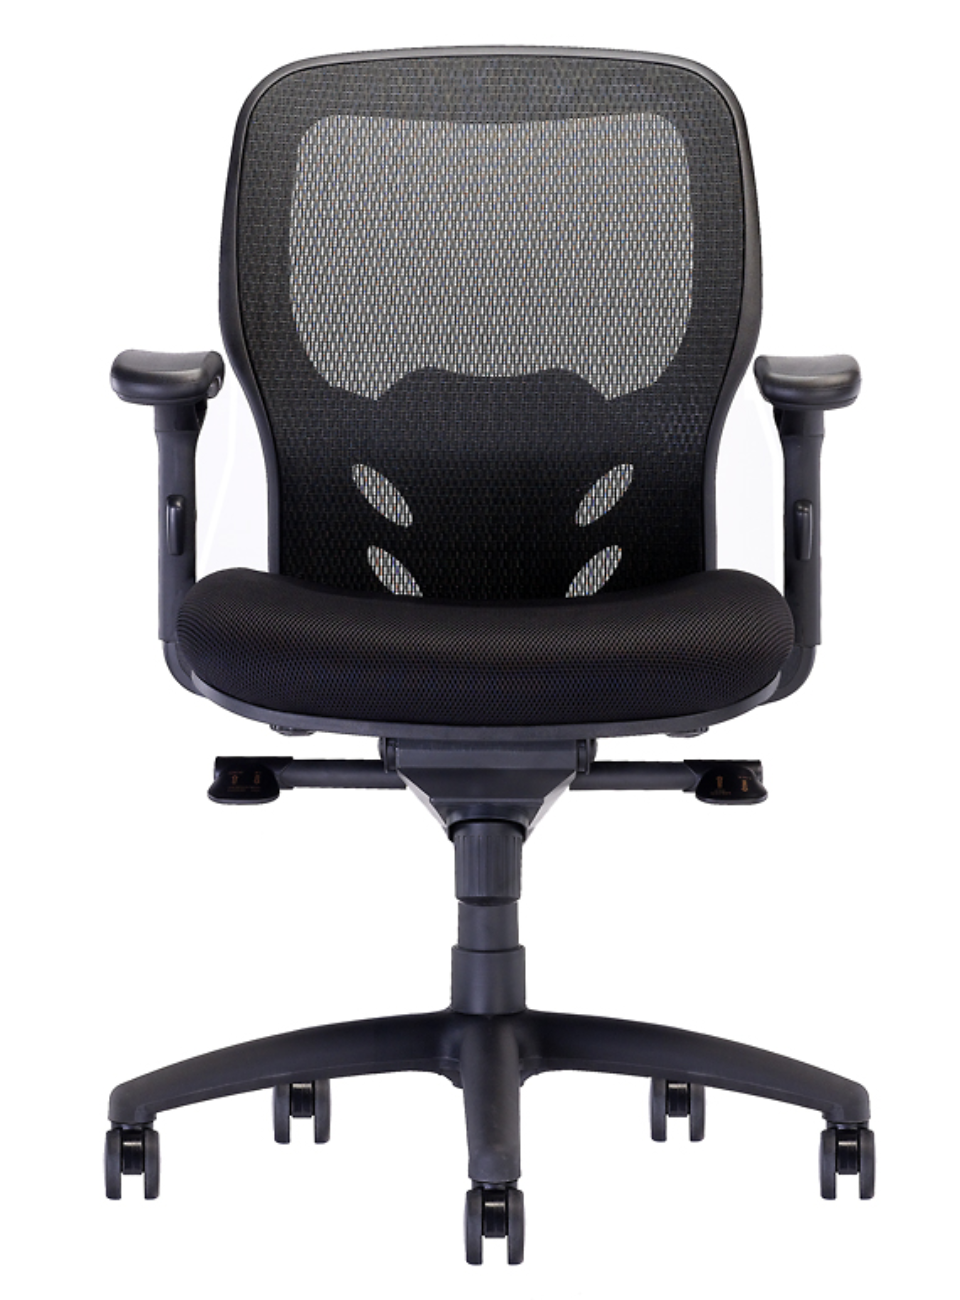 Cherryman Respond Chair